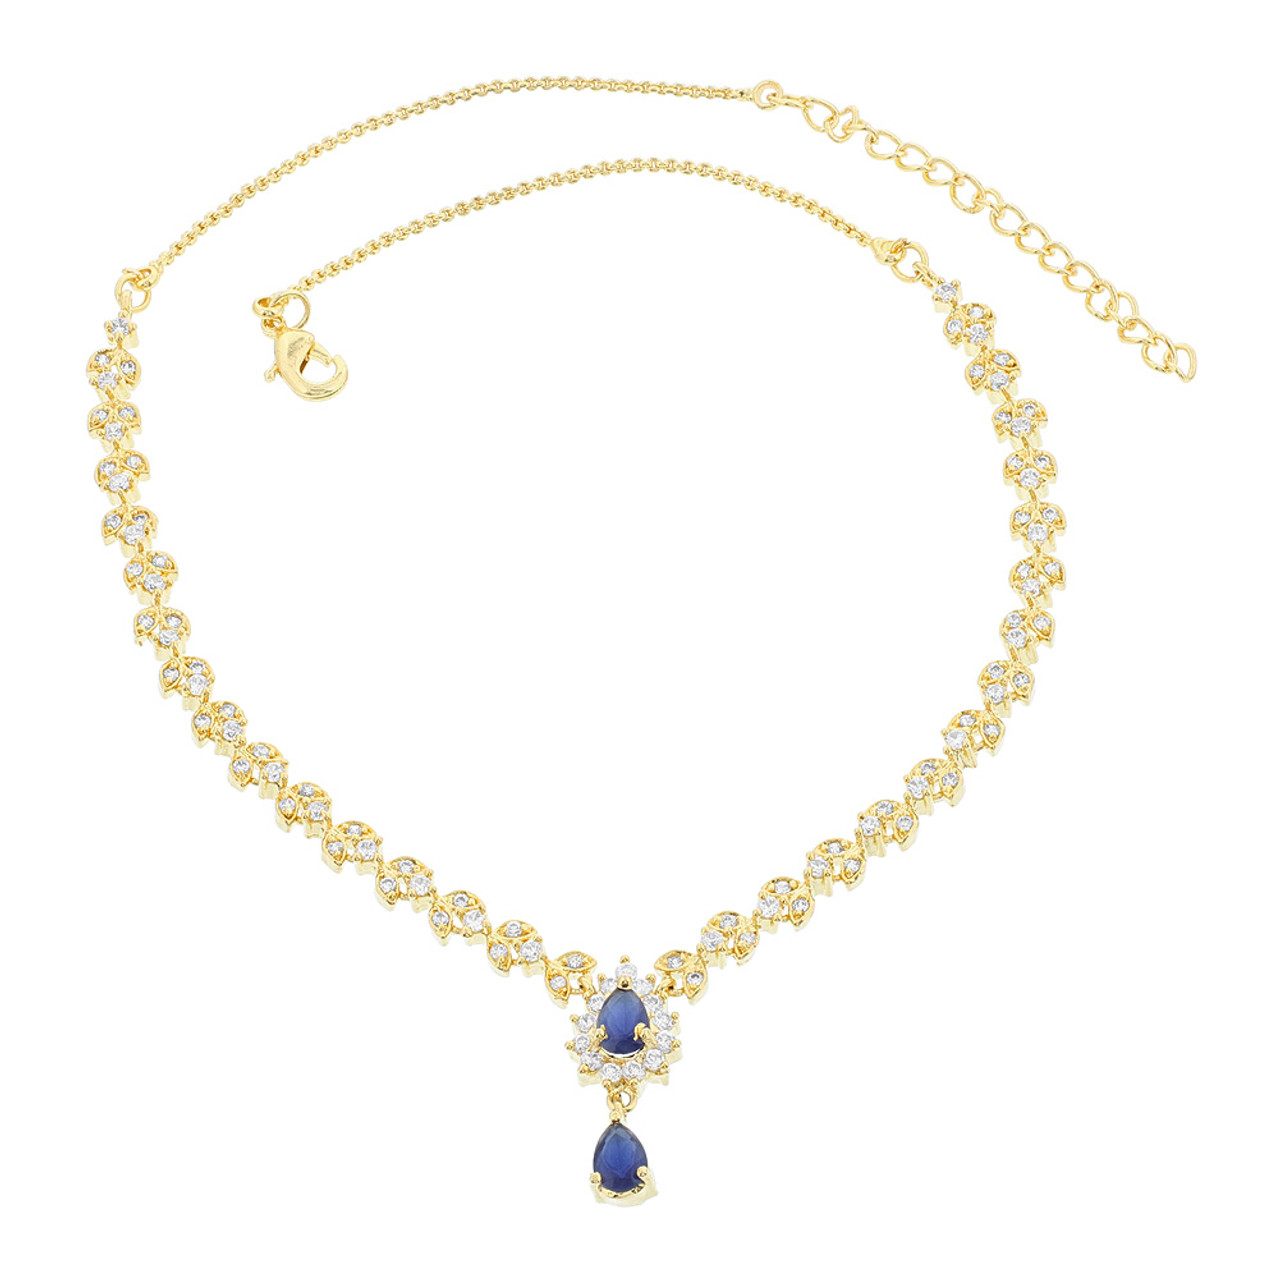 Gold Plated Simulated Blue Sapphire Stone Necklace Earrings Set